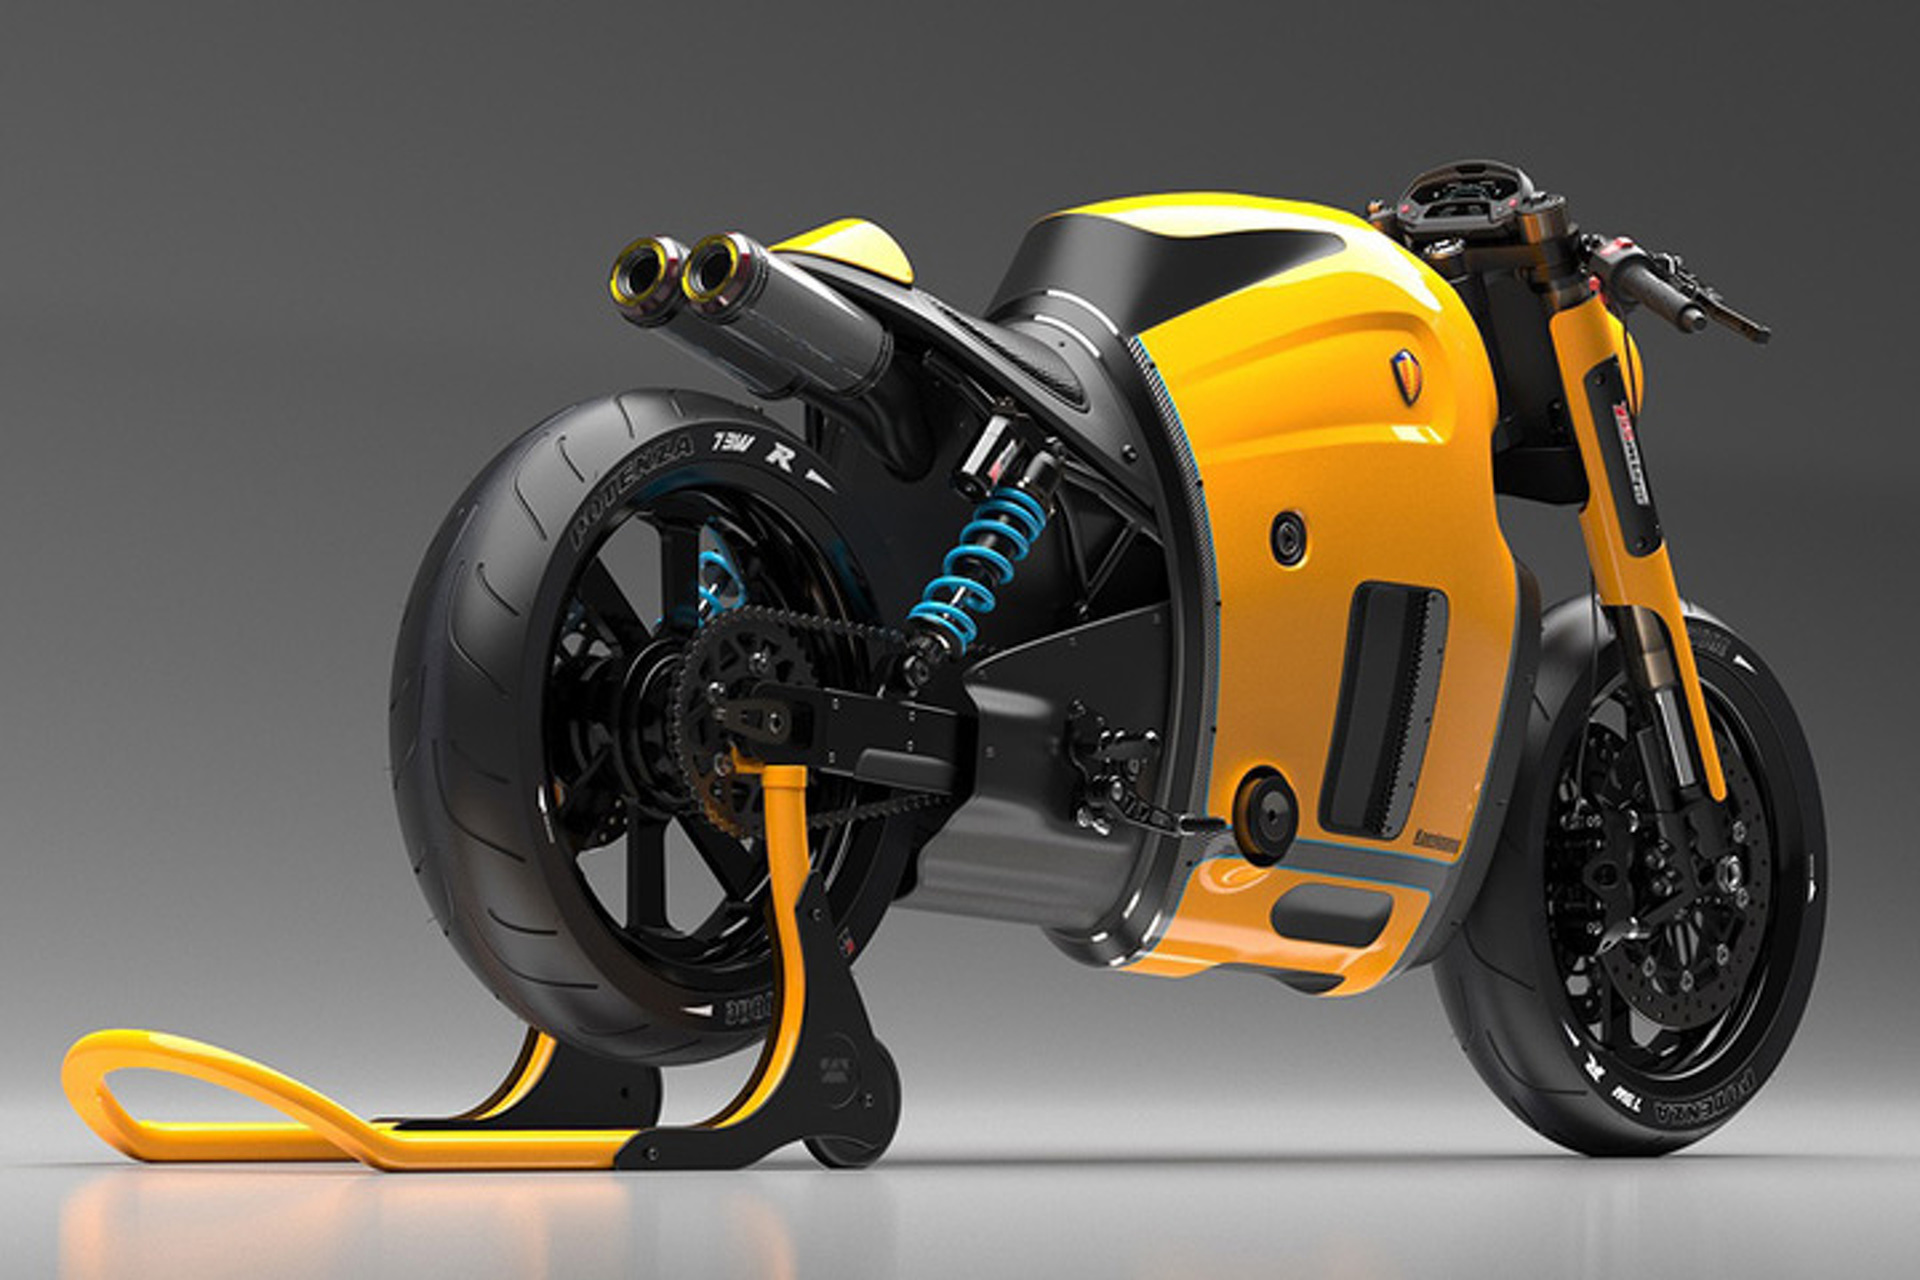 Should Koenigsegg Build this Motorcycle Concept?